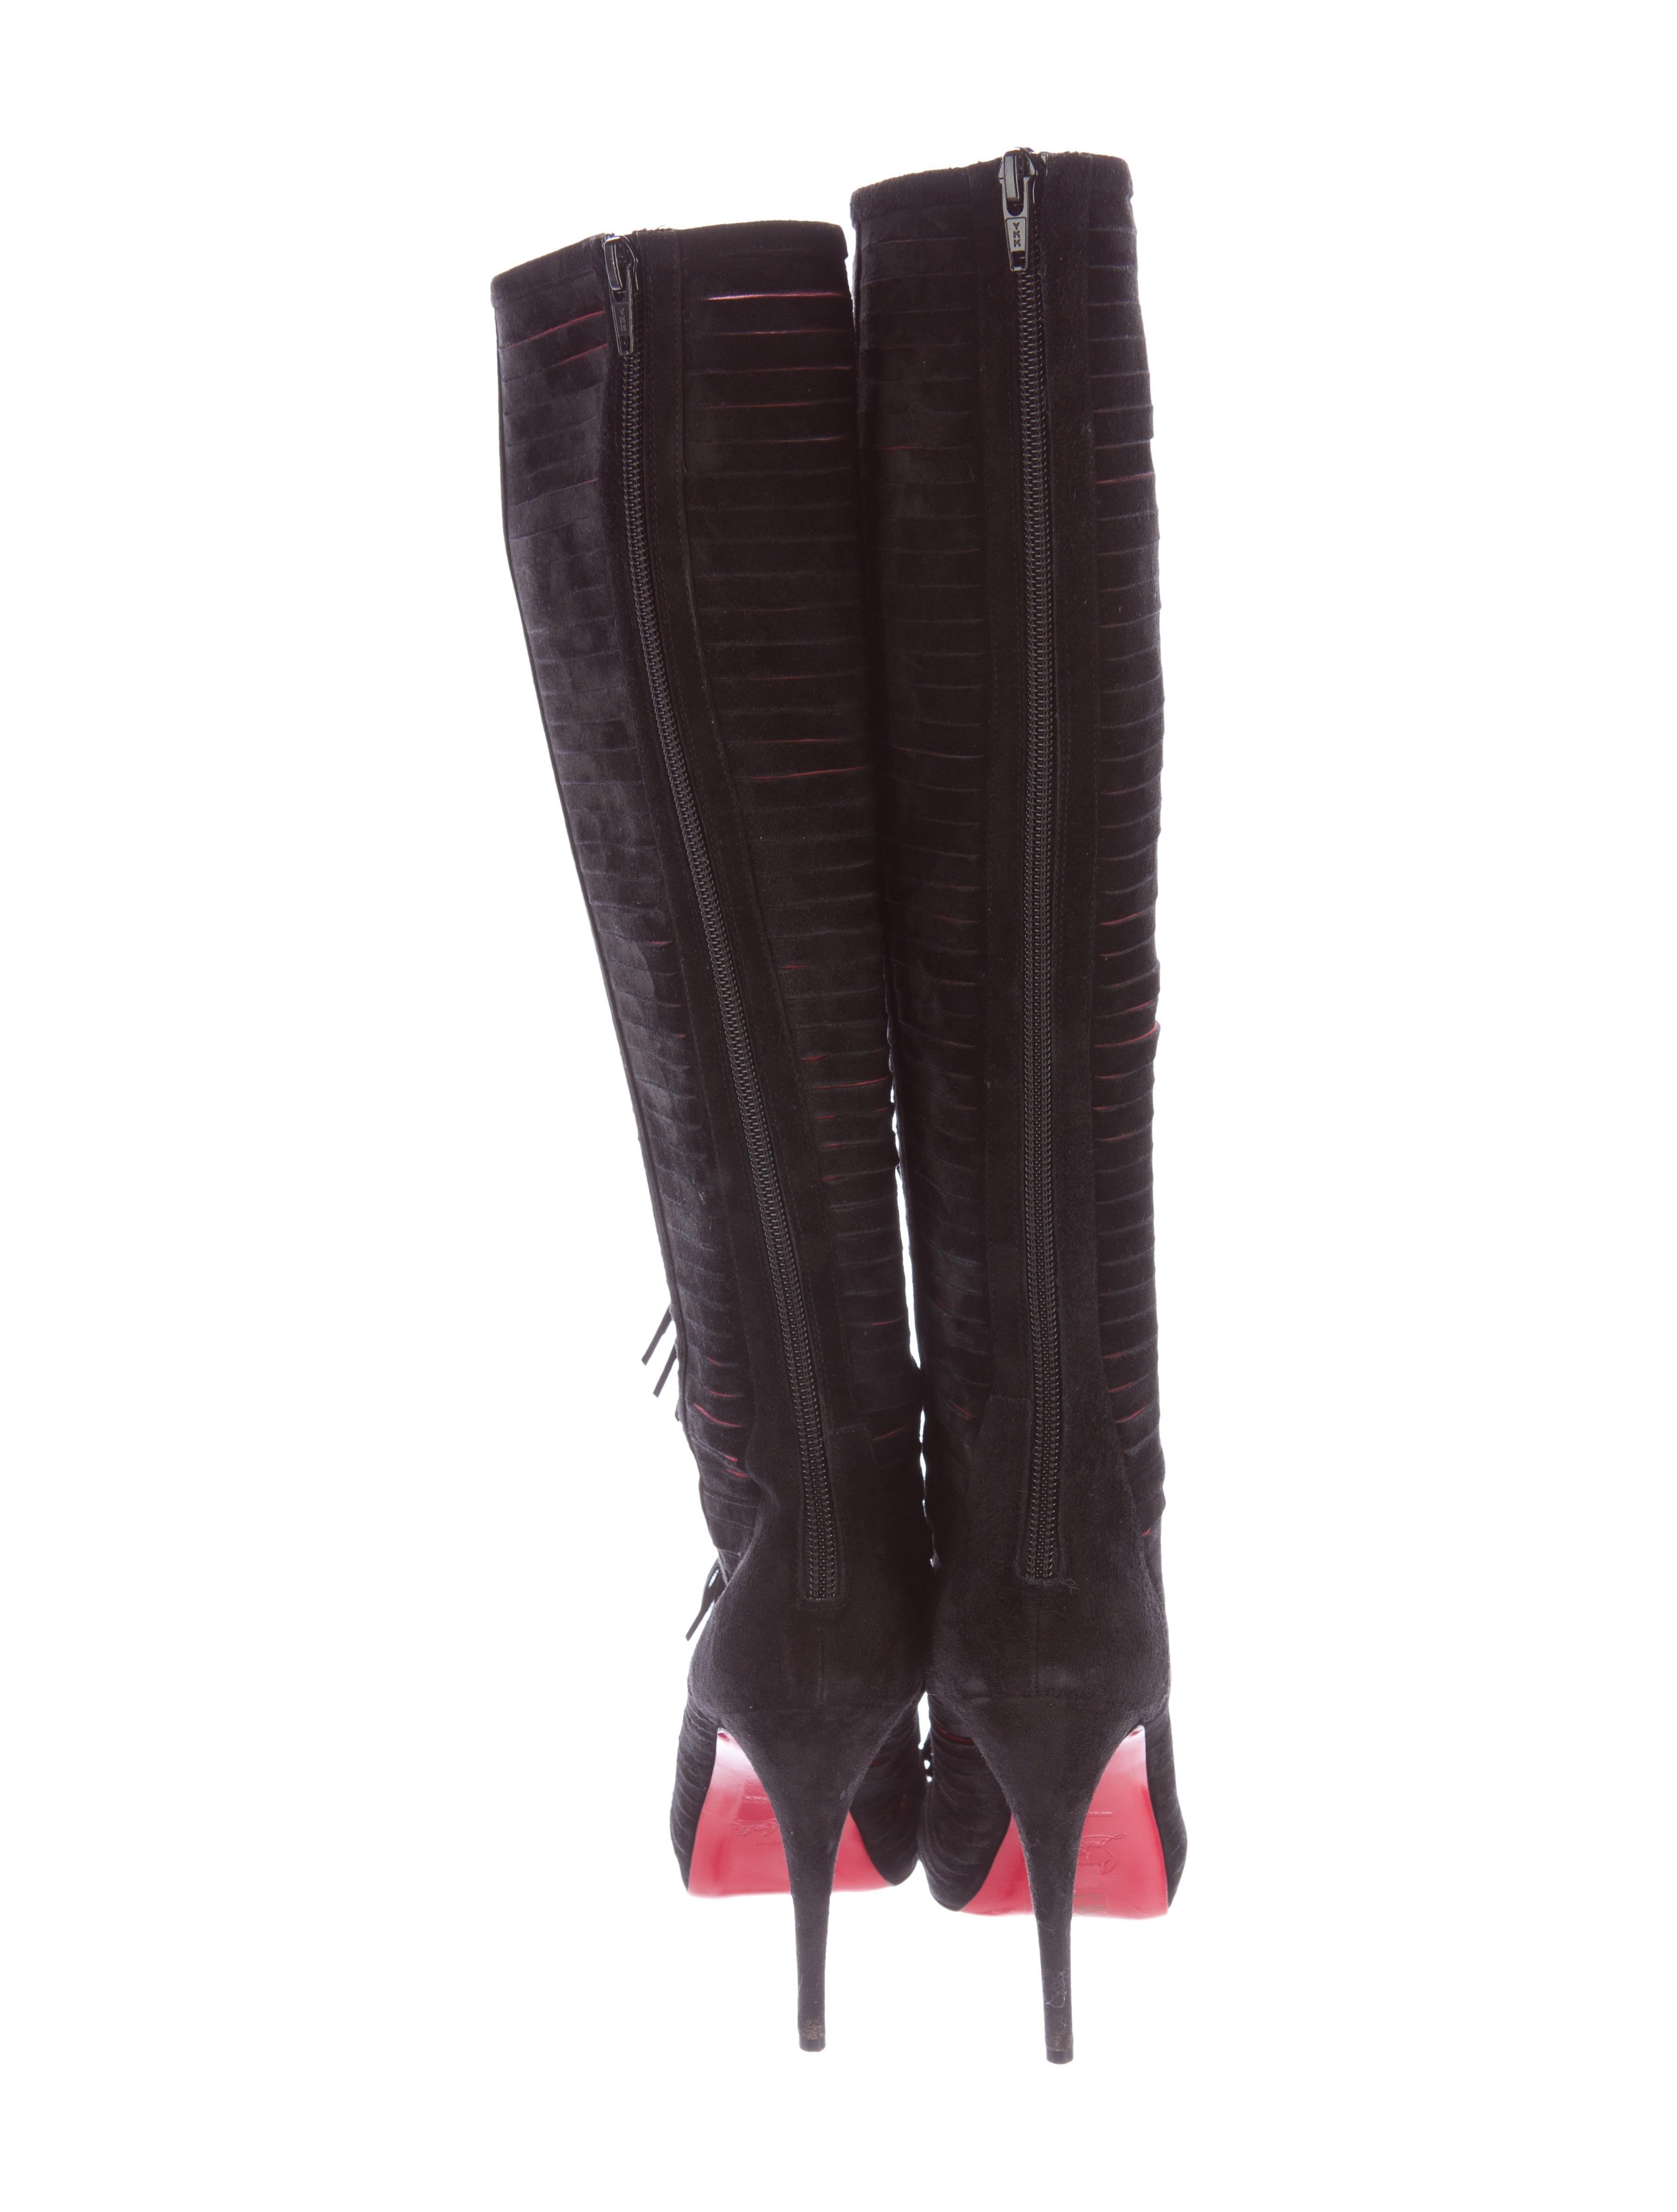 christian louboutin suede fringe boots shoes cht57473